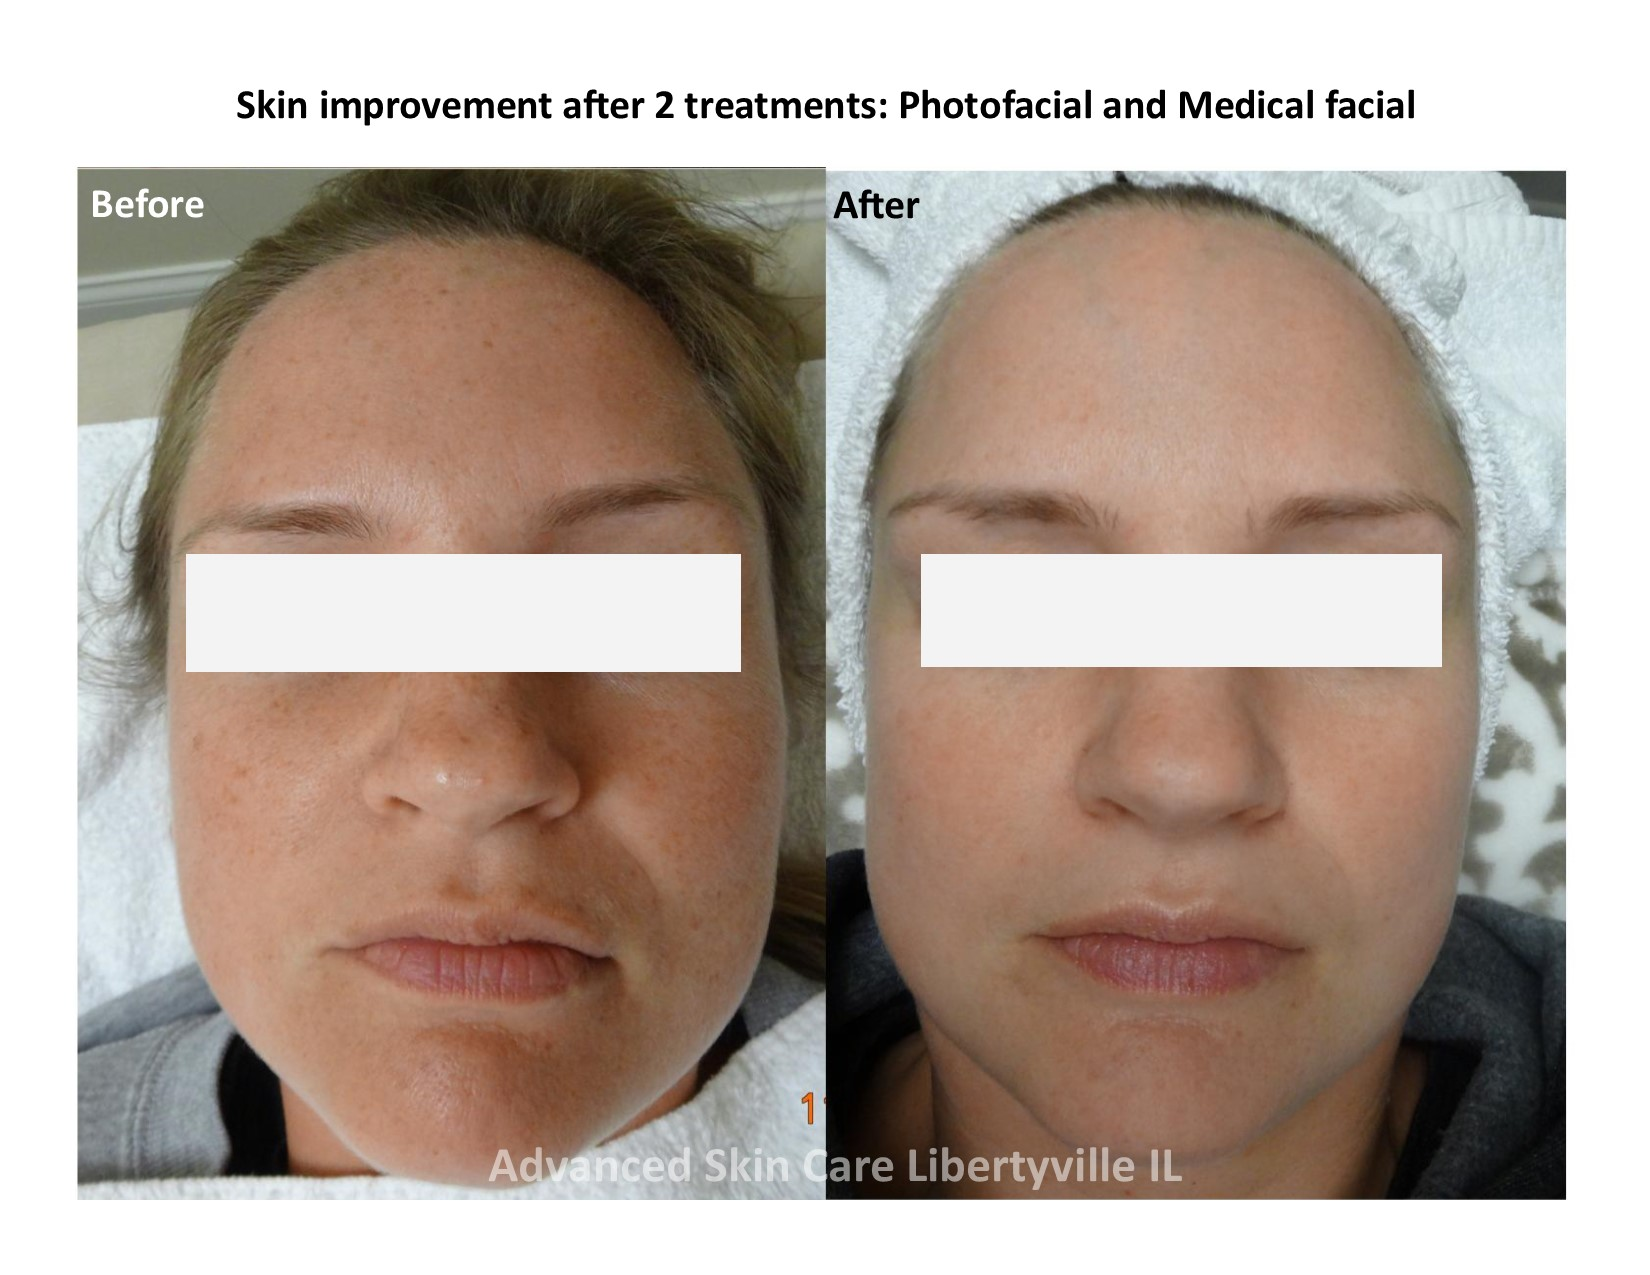 Photofacial before/after on face